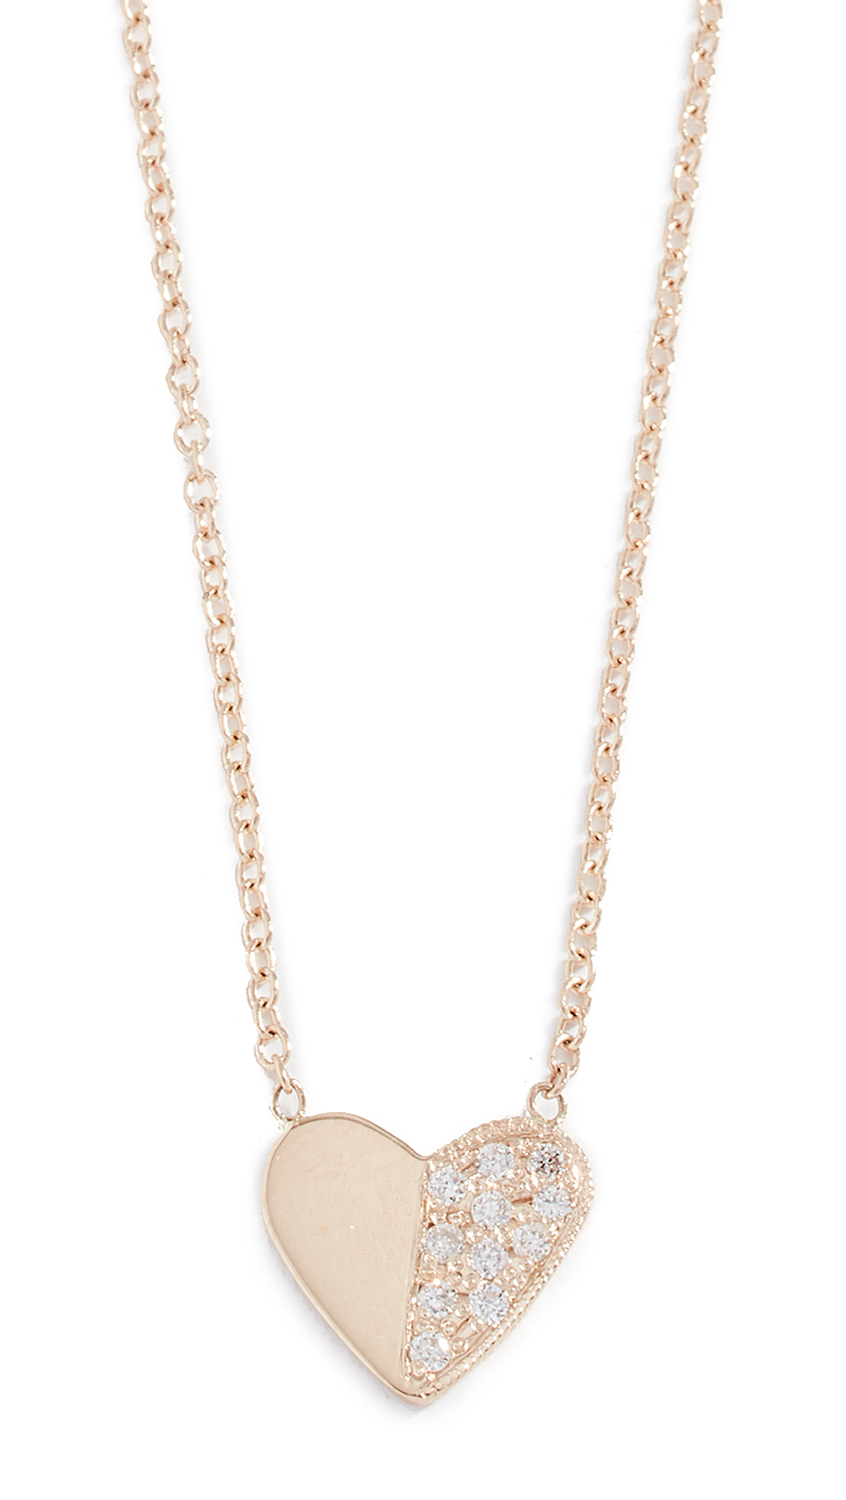 ARIEL GORDON JEWELRY 14K Close To My Heart Necklace in Yellow Gold